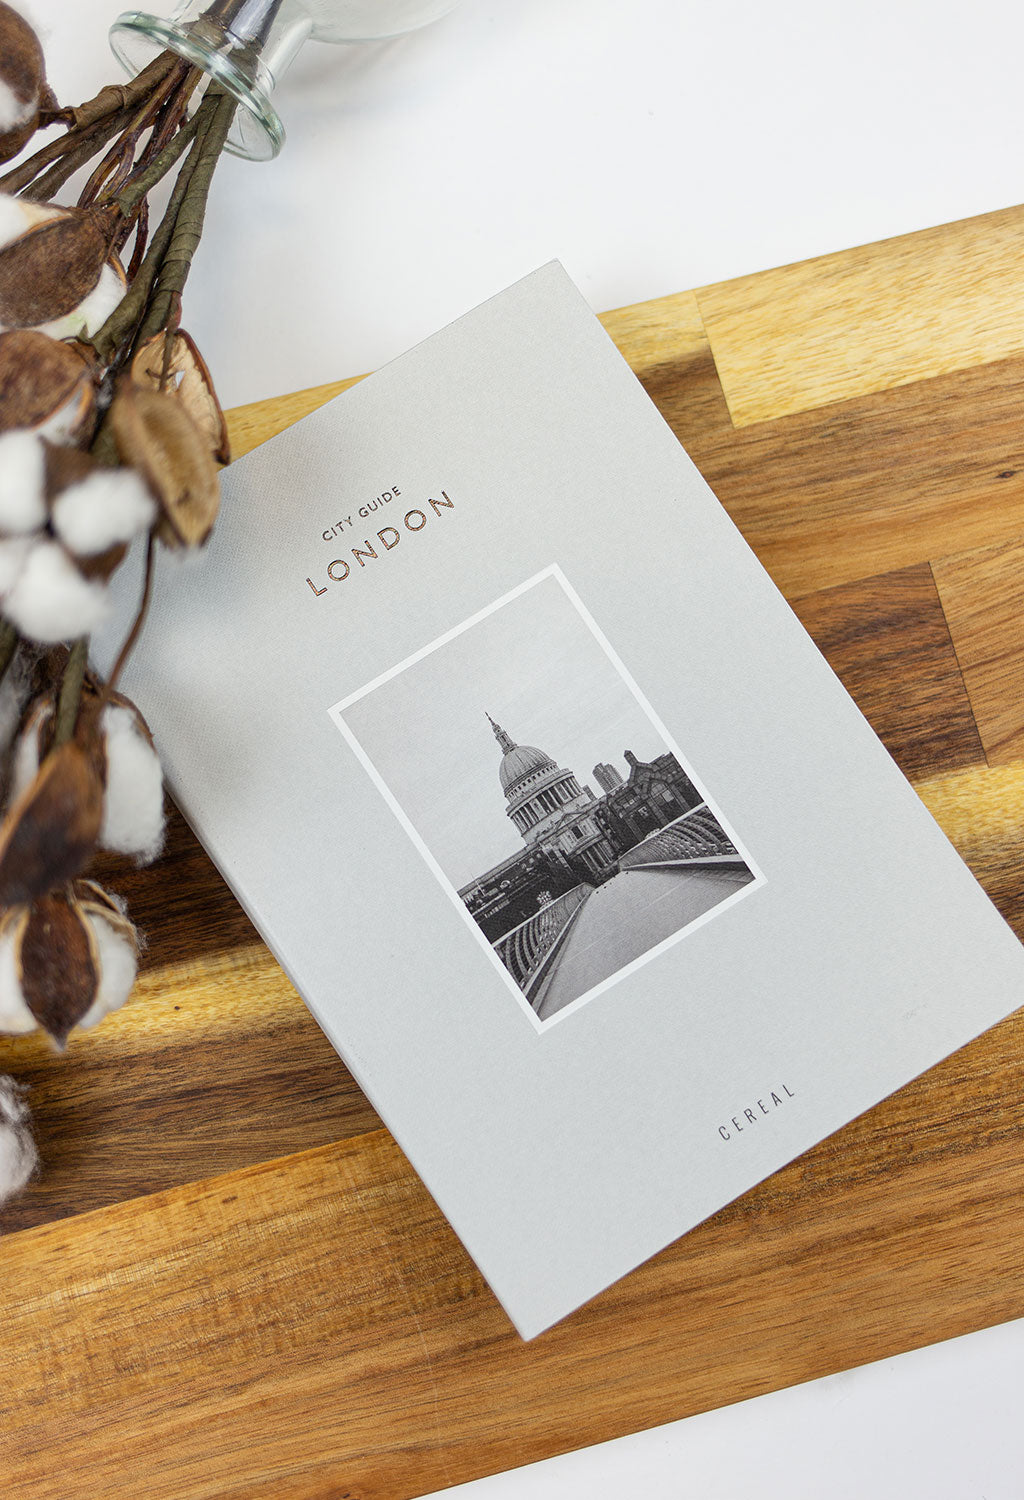 Cereal City Guide: London - RUST & Co.